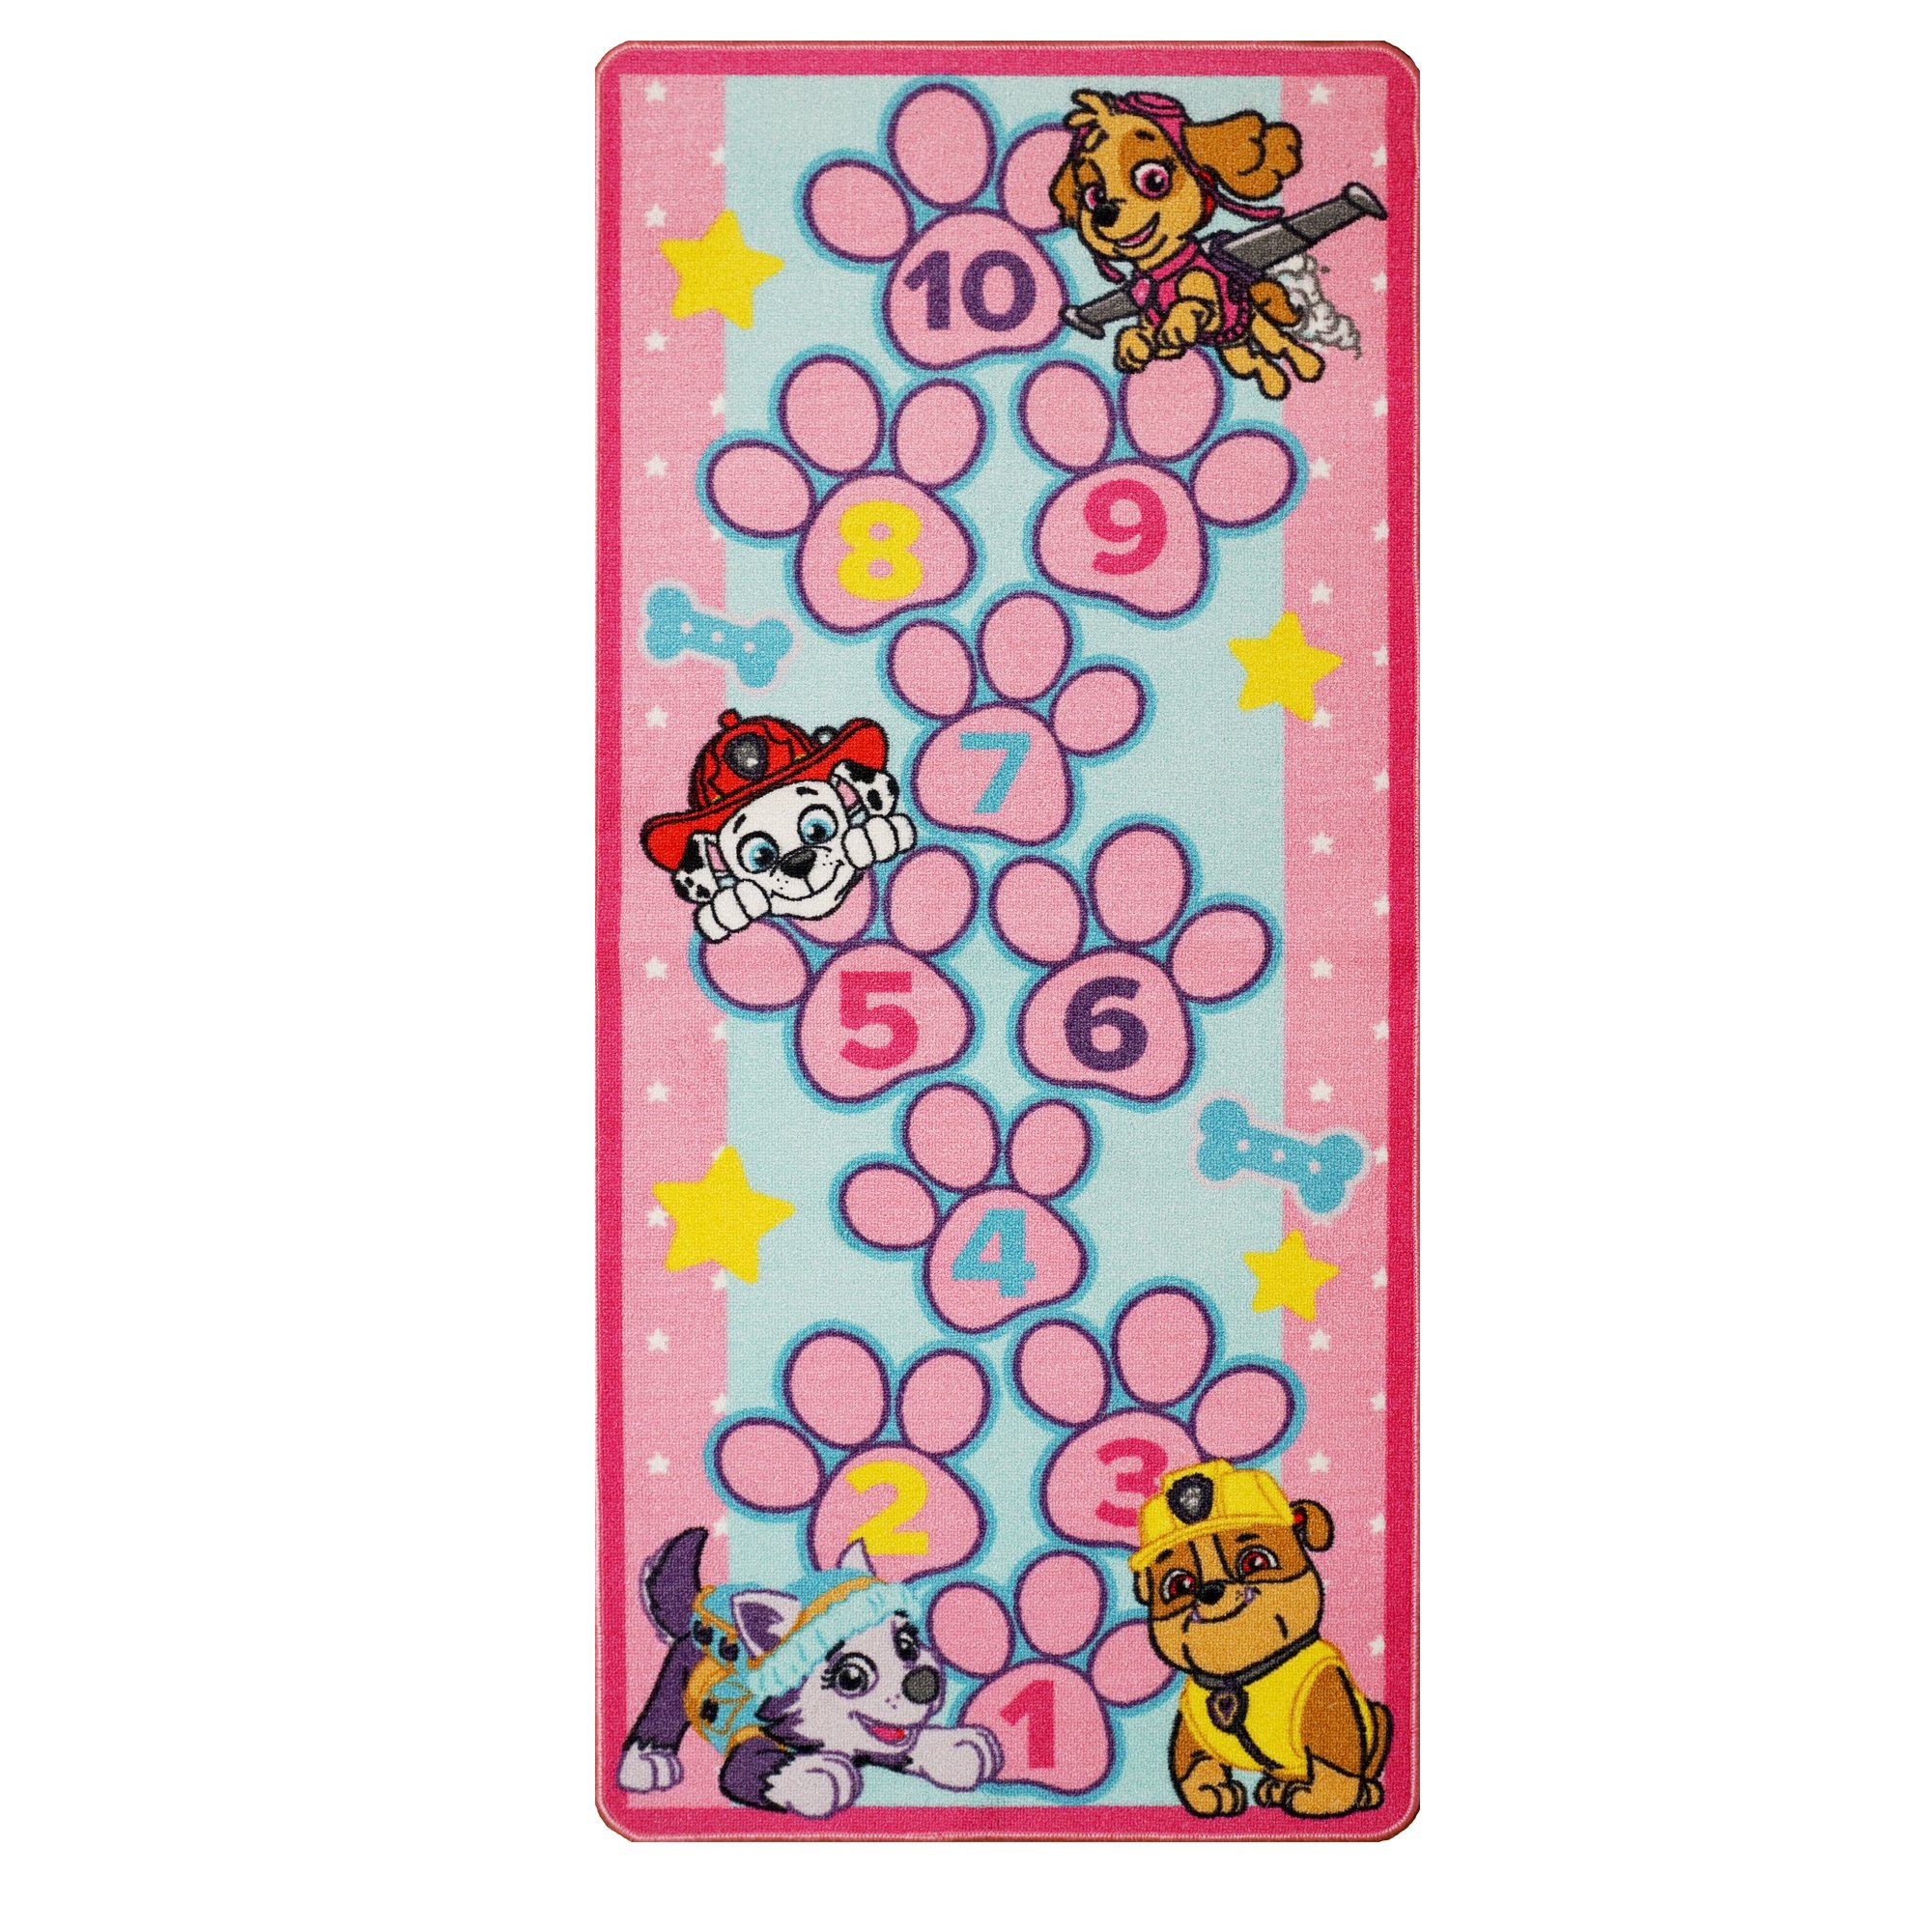 Paw Patrol Toys Rug Hopscotch Mat Skye, Marshall, Rubble, Everest Kids Game Rugs Throw Runner, 26''x58'', Pink by Gertmenian